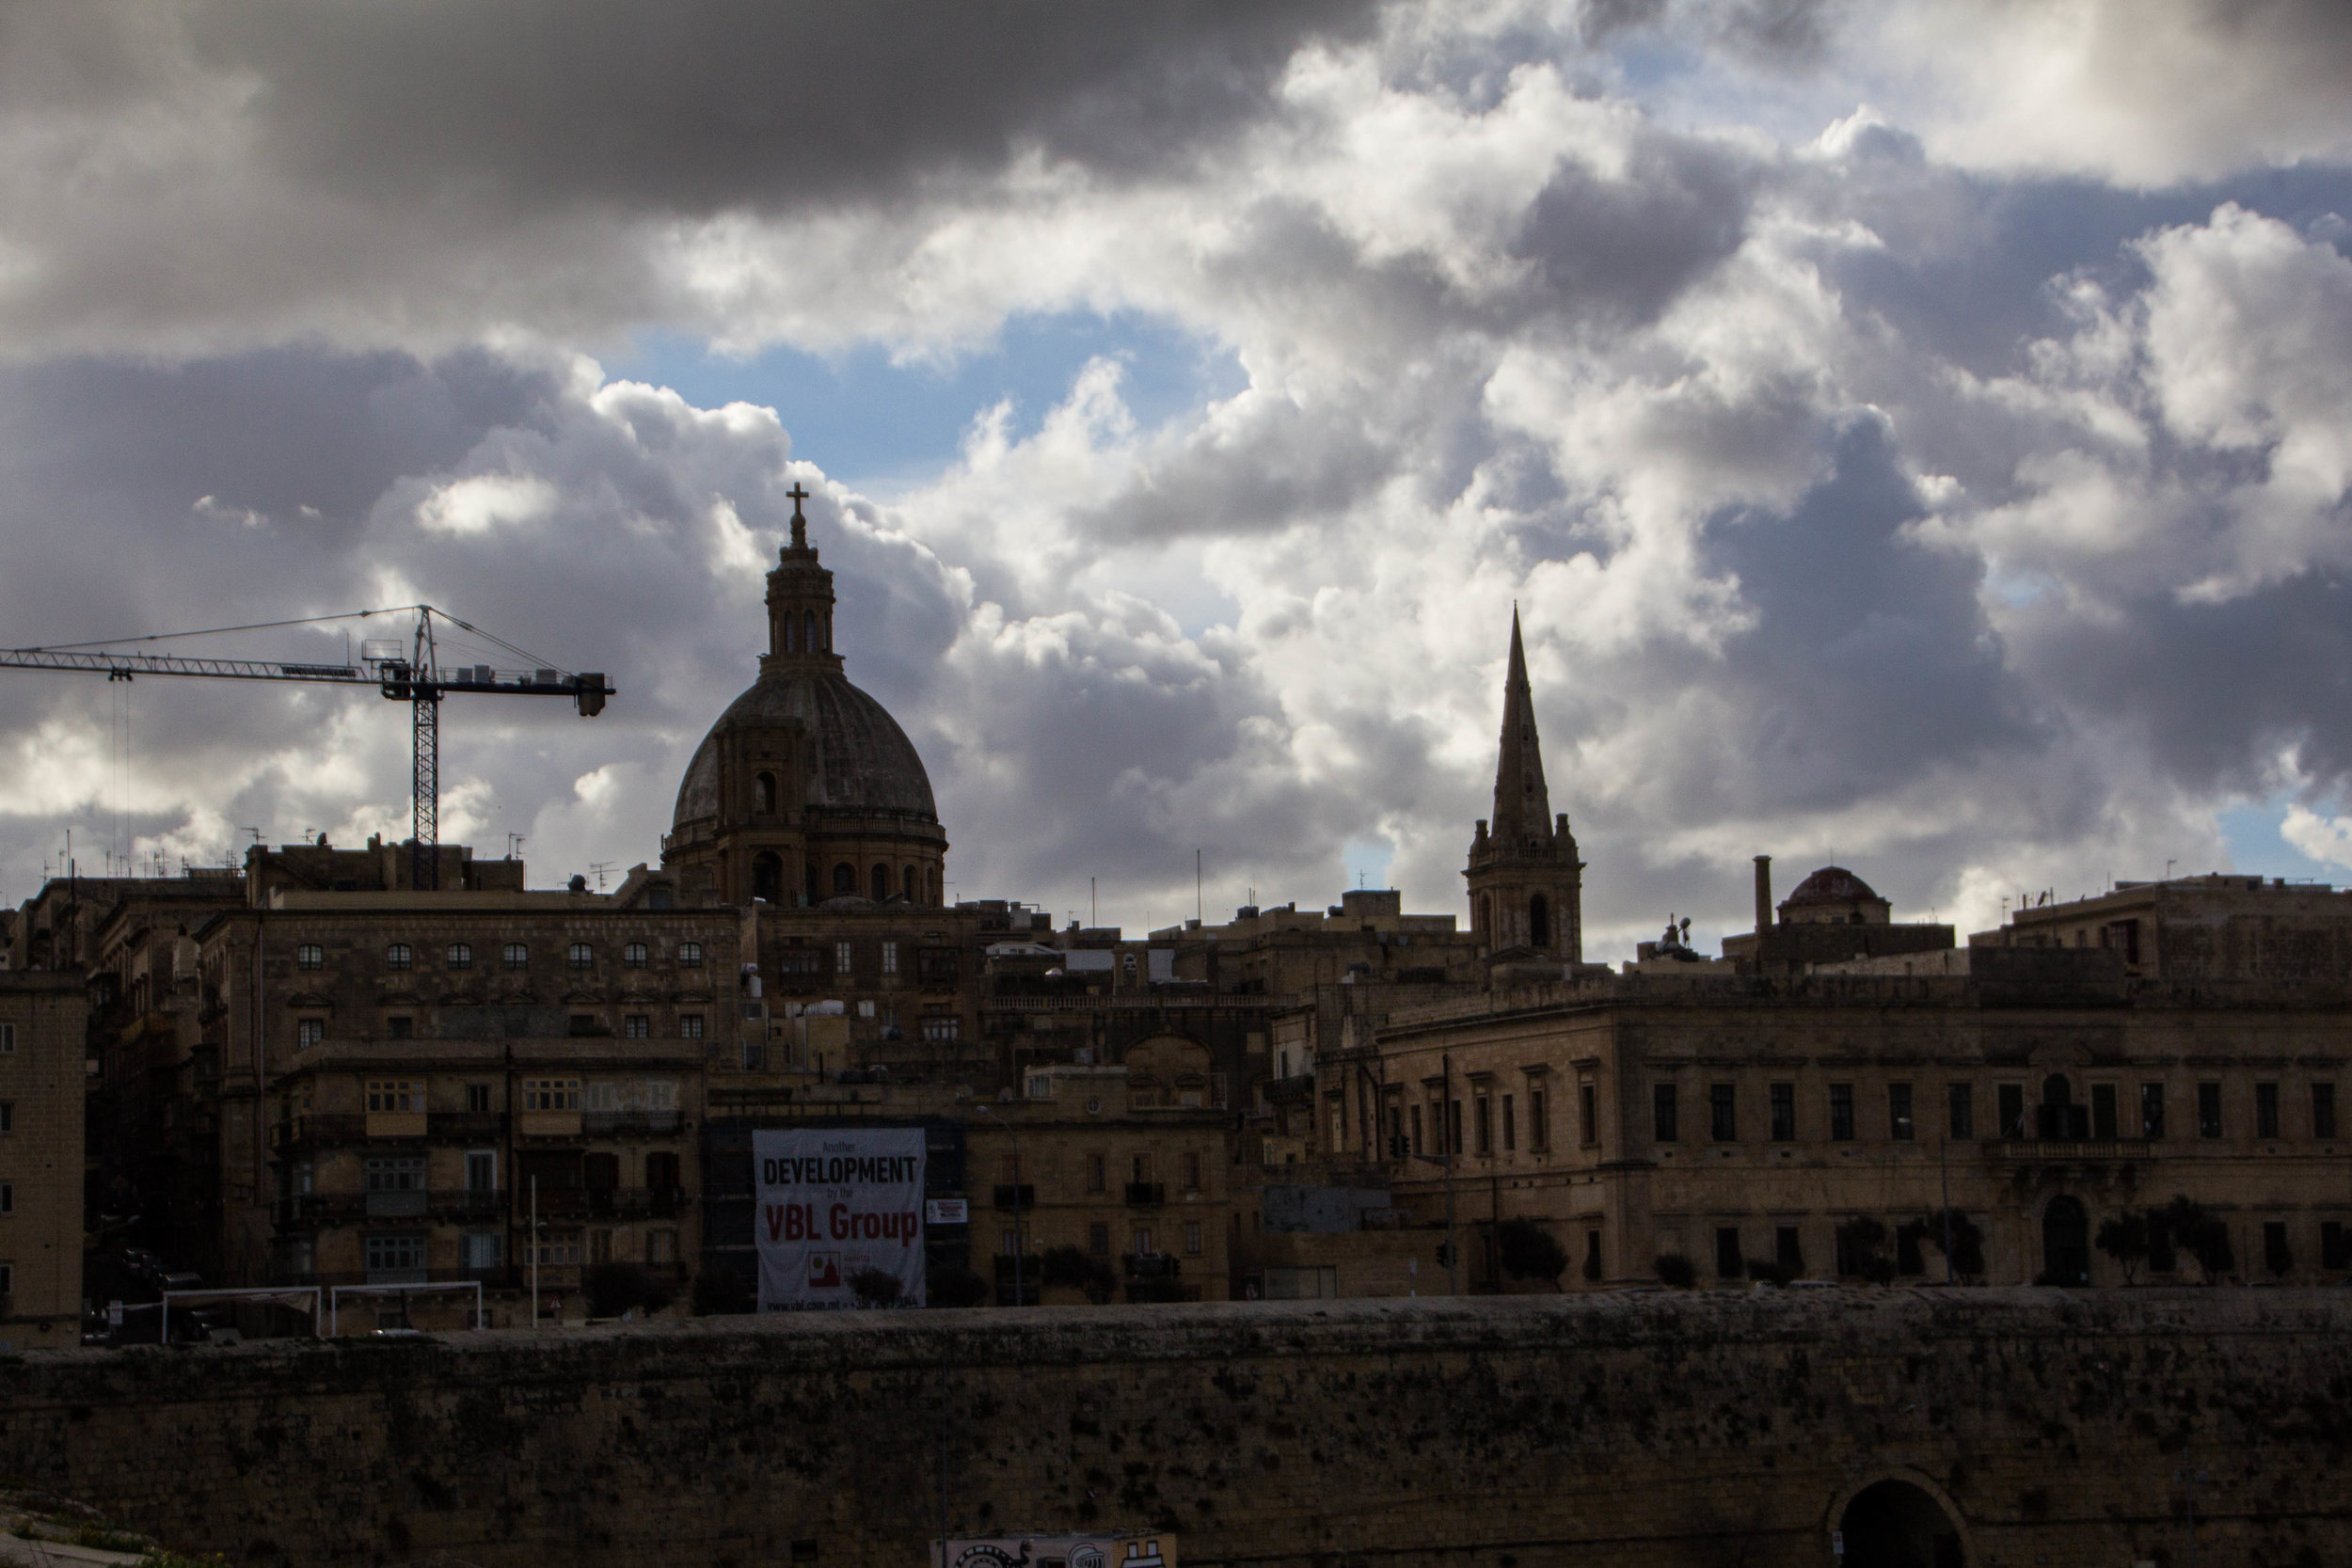 valletta-malta-clouds-rain-streets-photography-38.jpg